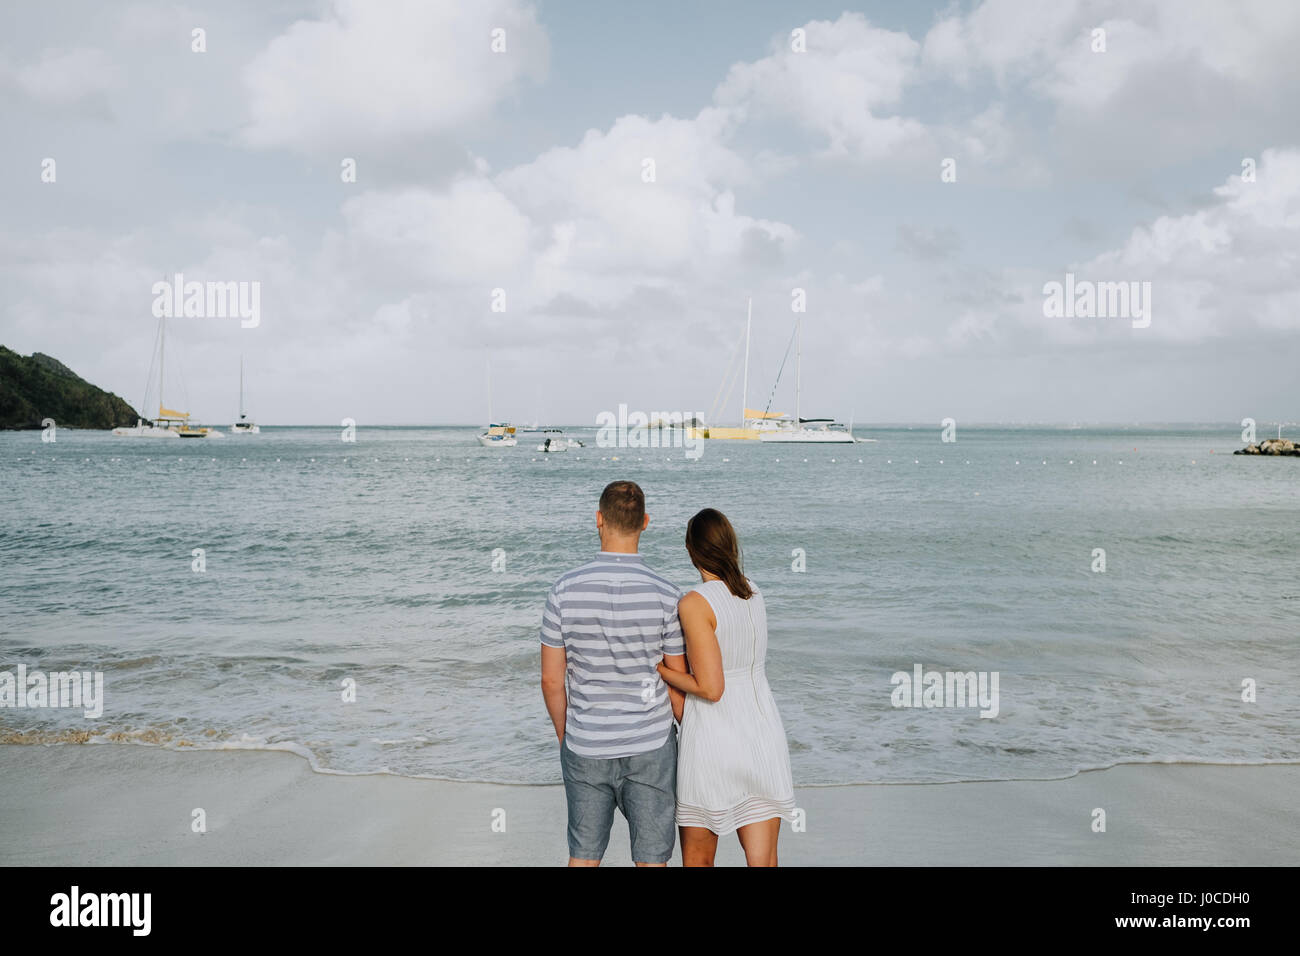 Couple standing, looking out to sea, rear view, Saint Martin, Caribbean - Stock Image